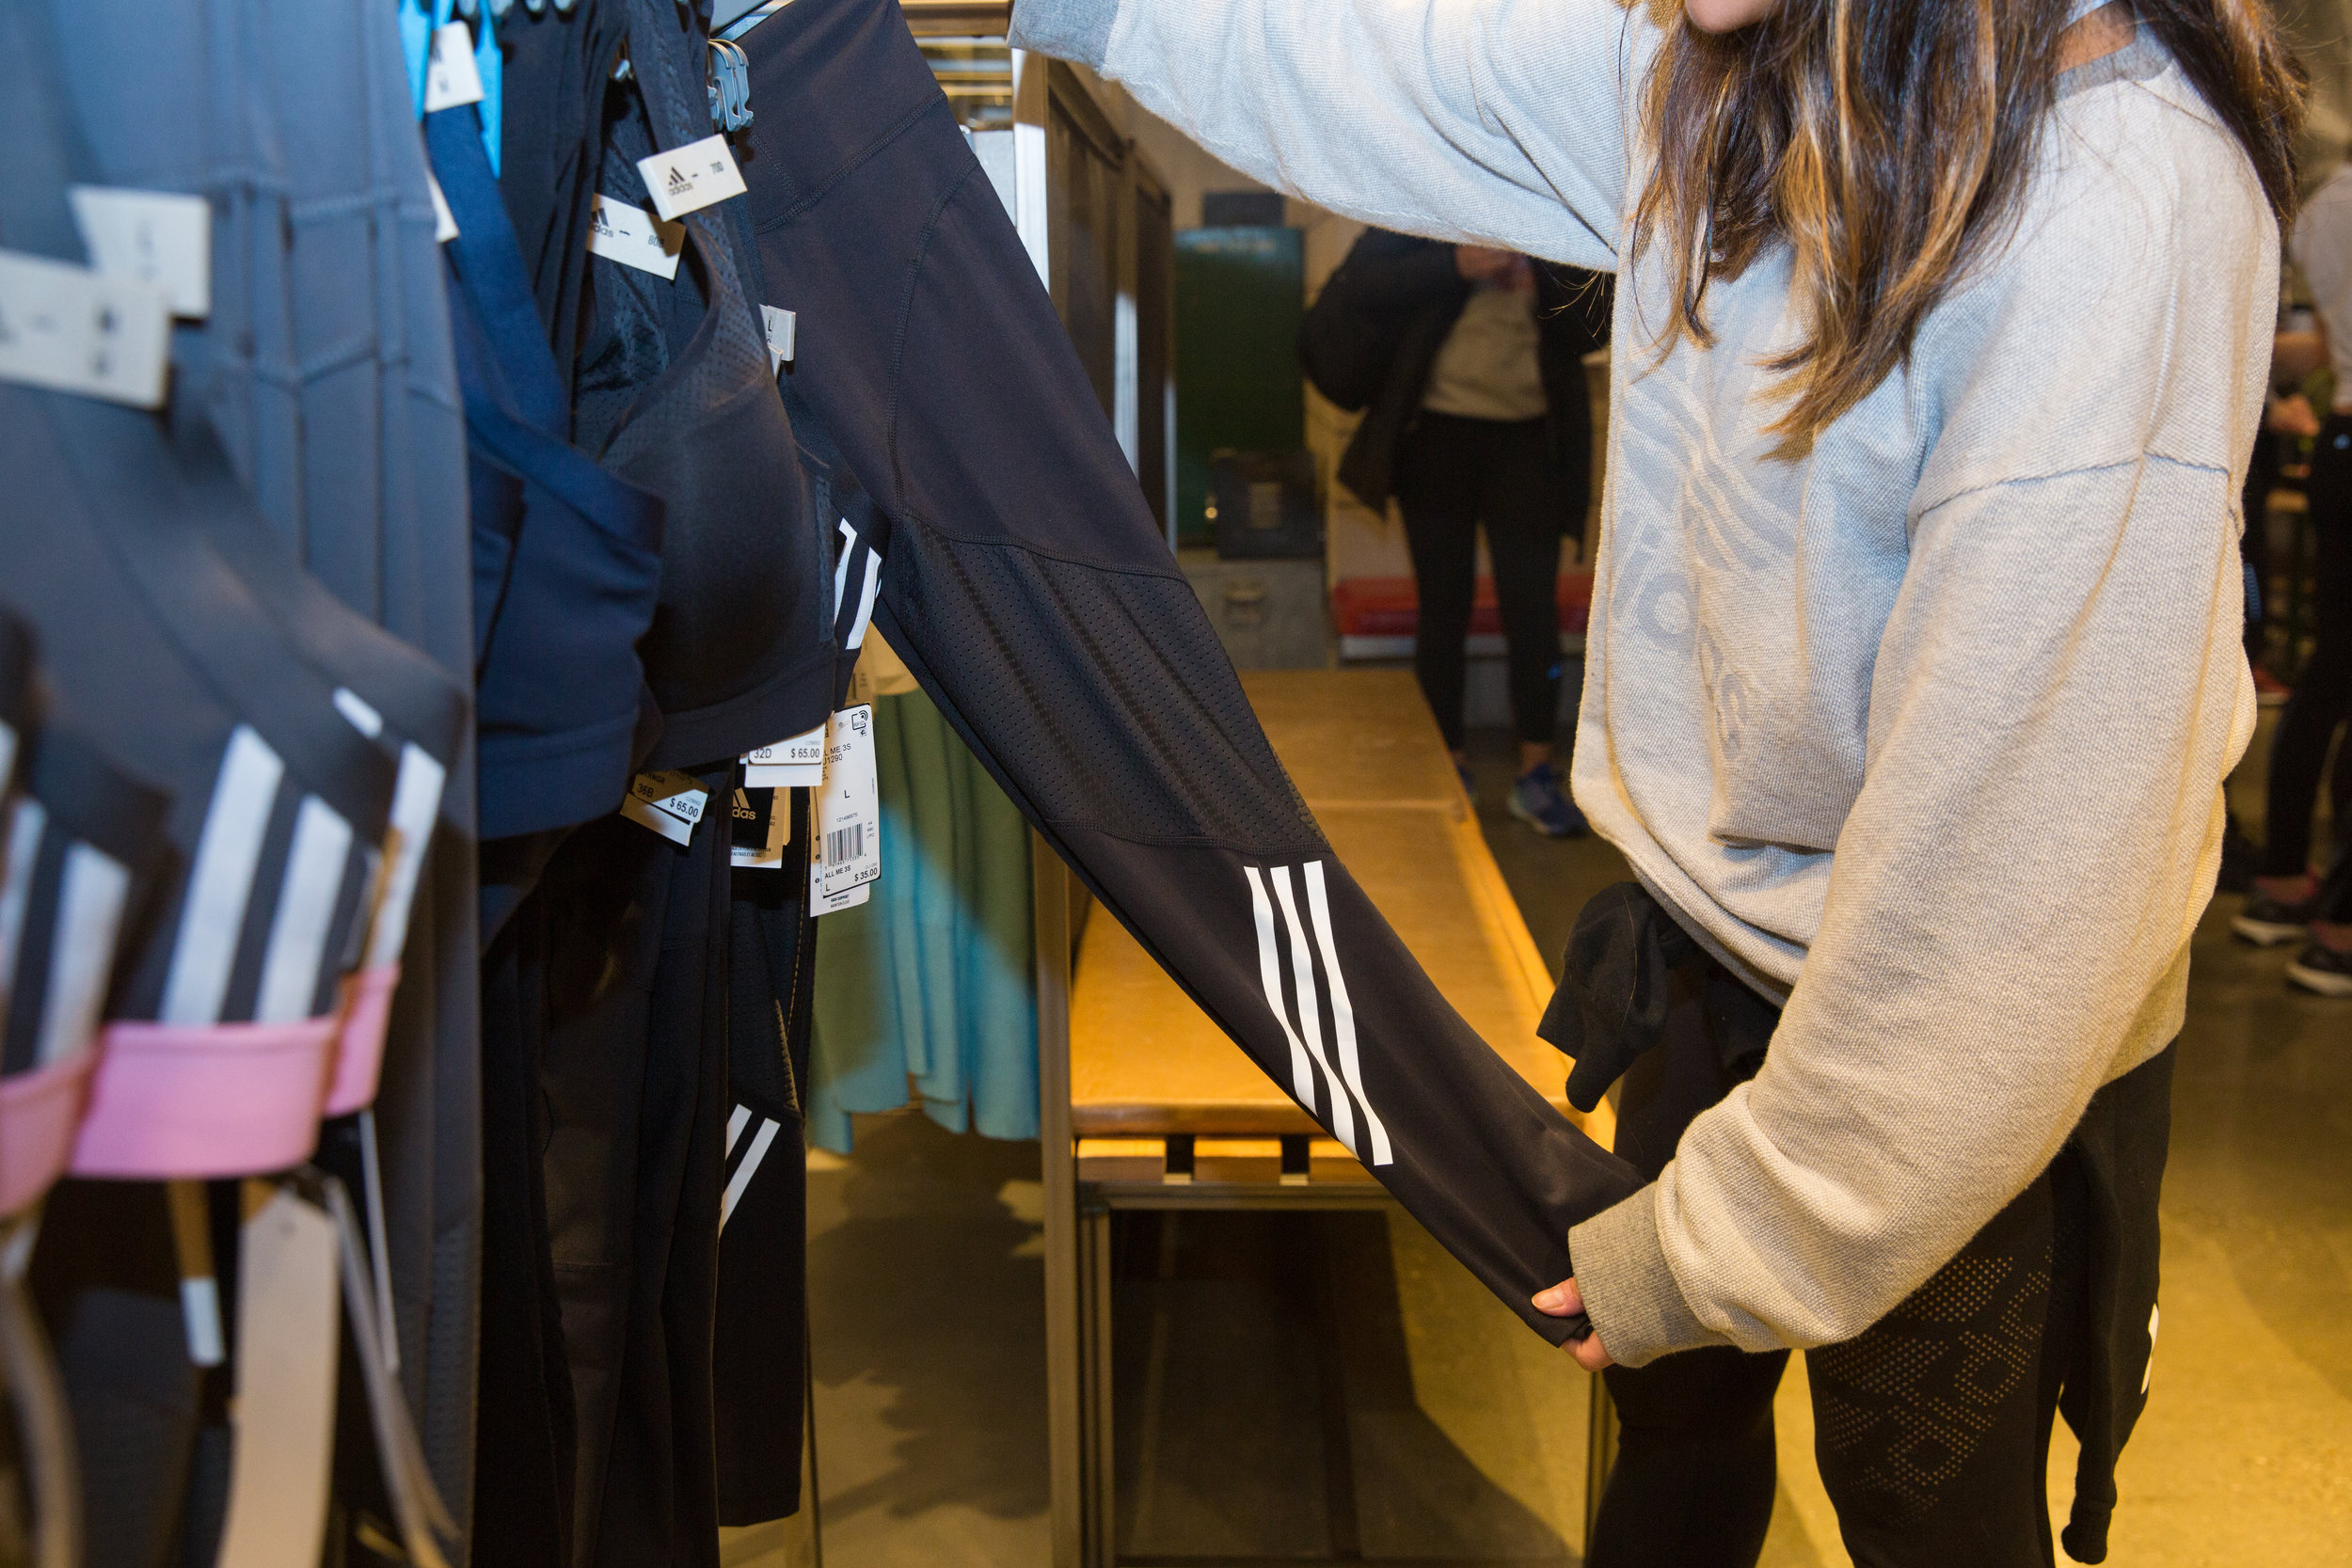 Attendees got a peek at the newly released Adidas collection. Everyone received a 30 percent in-store discount as well.